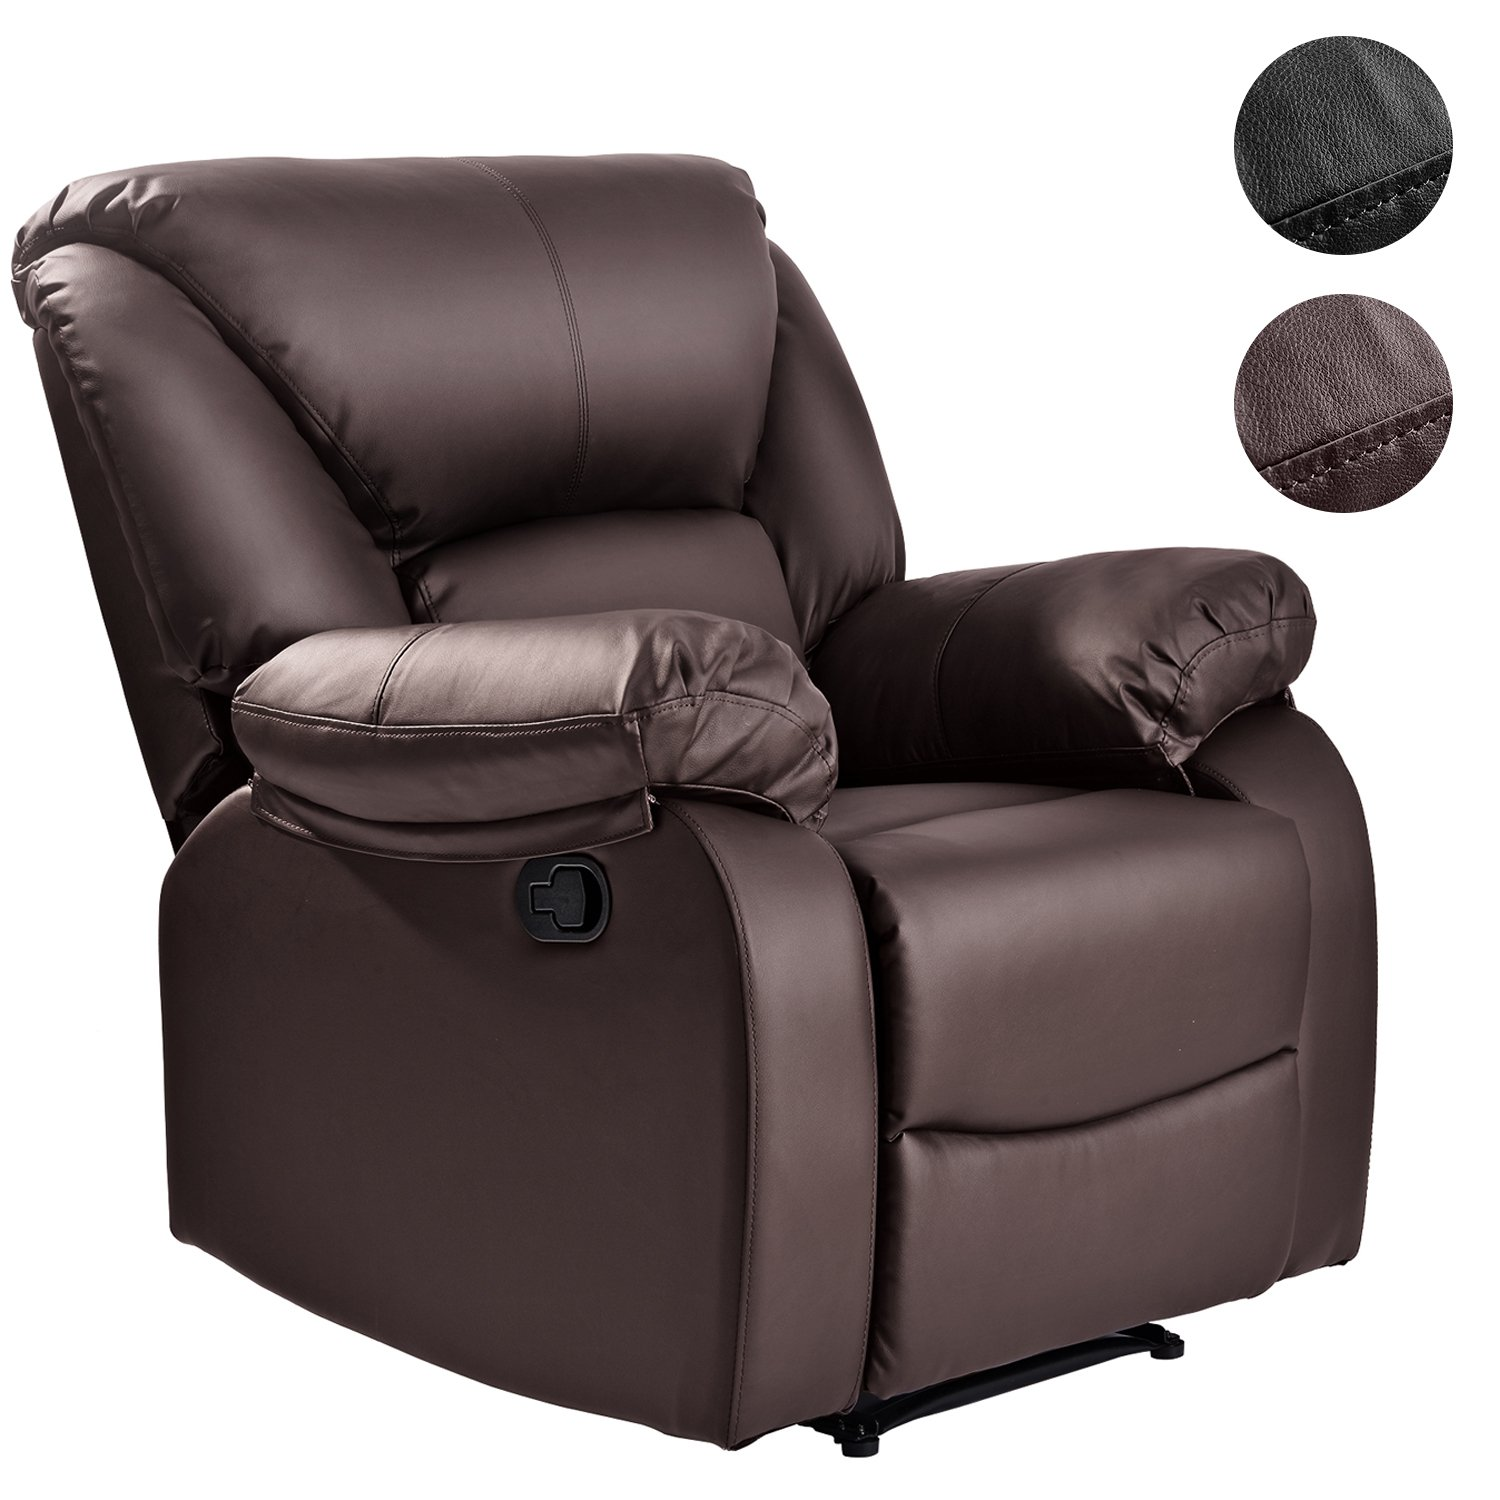 LIFE CARVER Leather Recliner Chair Recliner Armchair Sofa Home Lounge Reclining Gaming Home Office(Black)